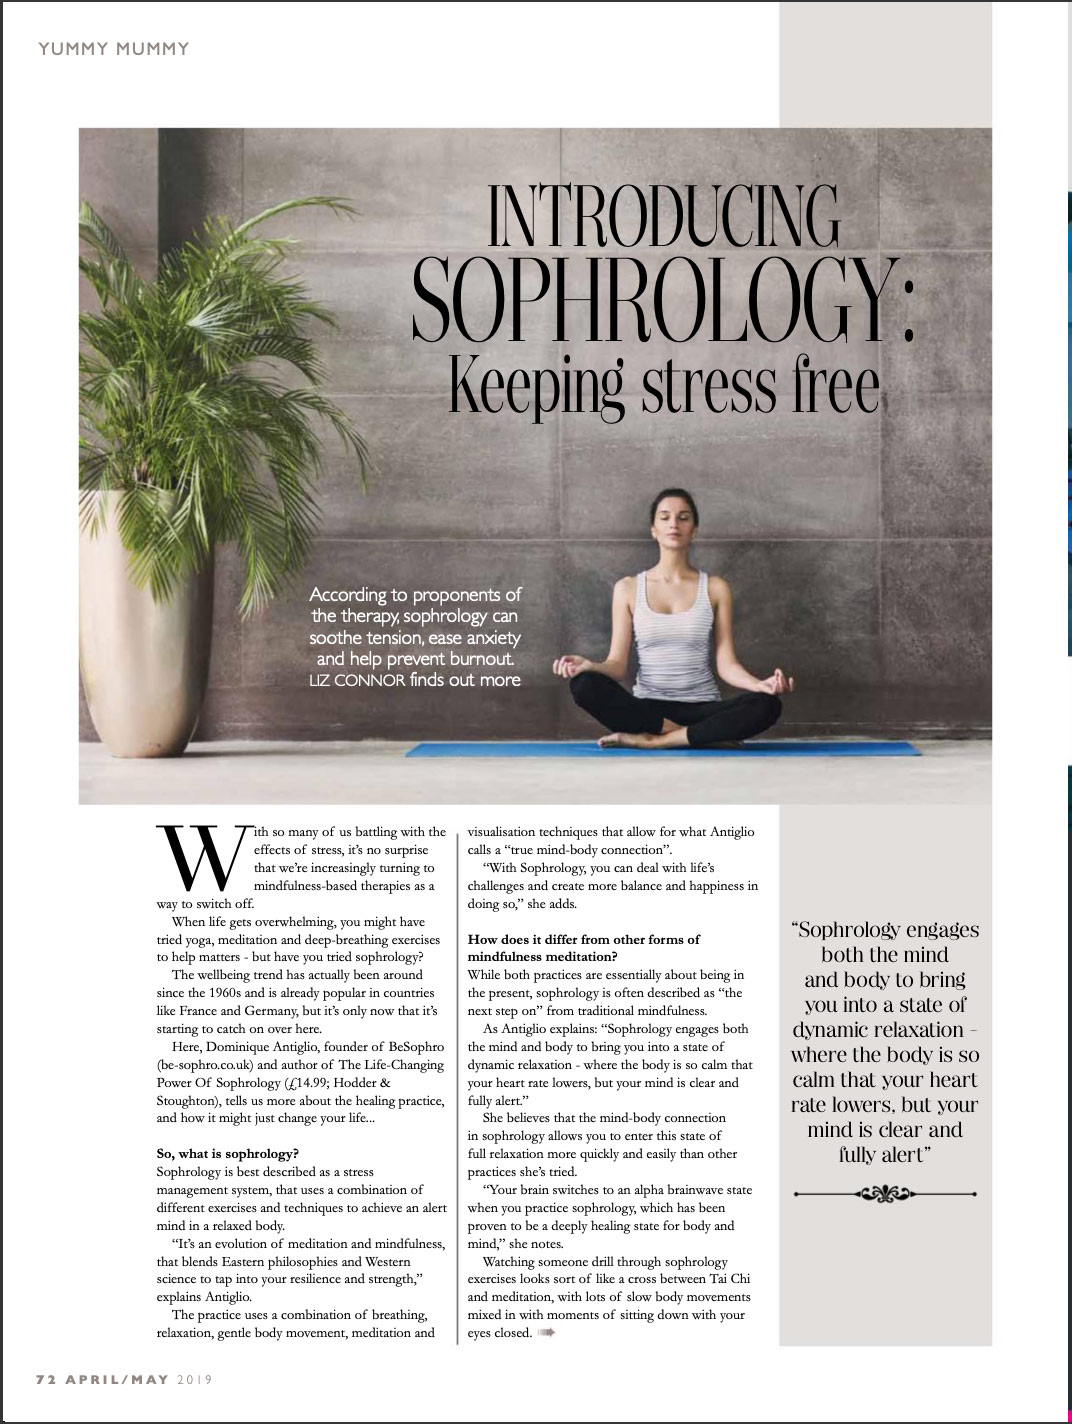 Read how Sophrology can soothe tension, ease anxiety and help prevent burnout.